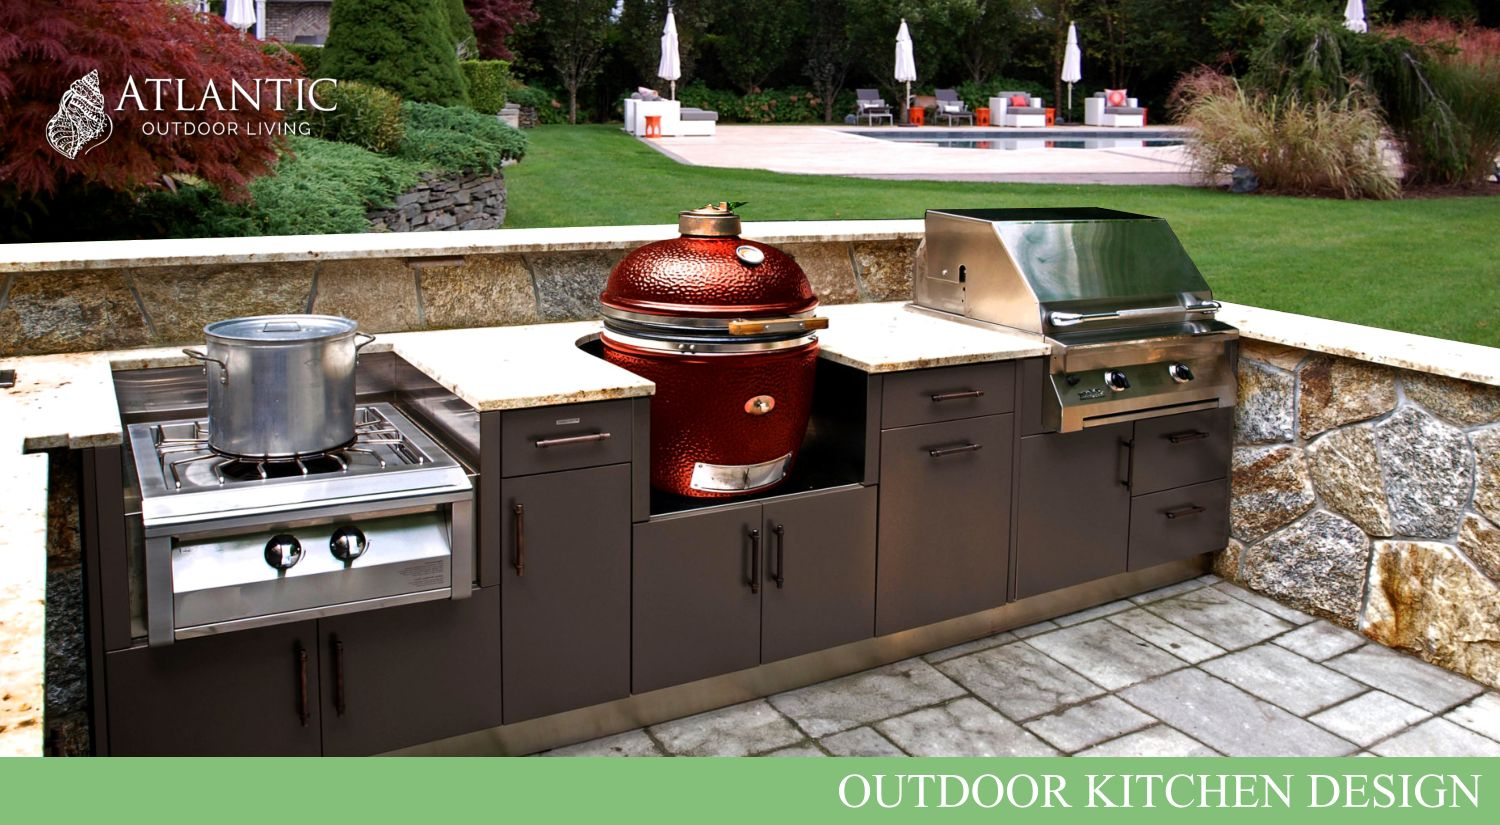 Uncategorized Outdoor Kitchen Designs outdoor kitchen designs with roofs atlantic living is your design center